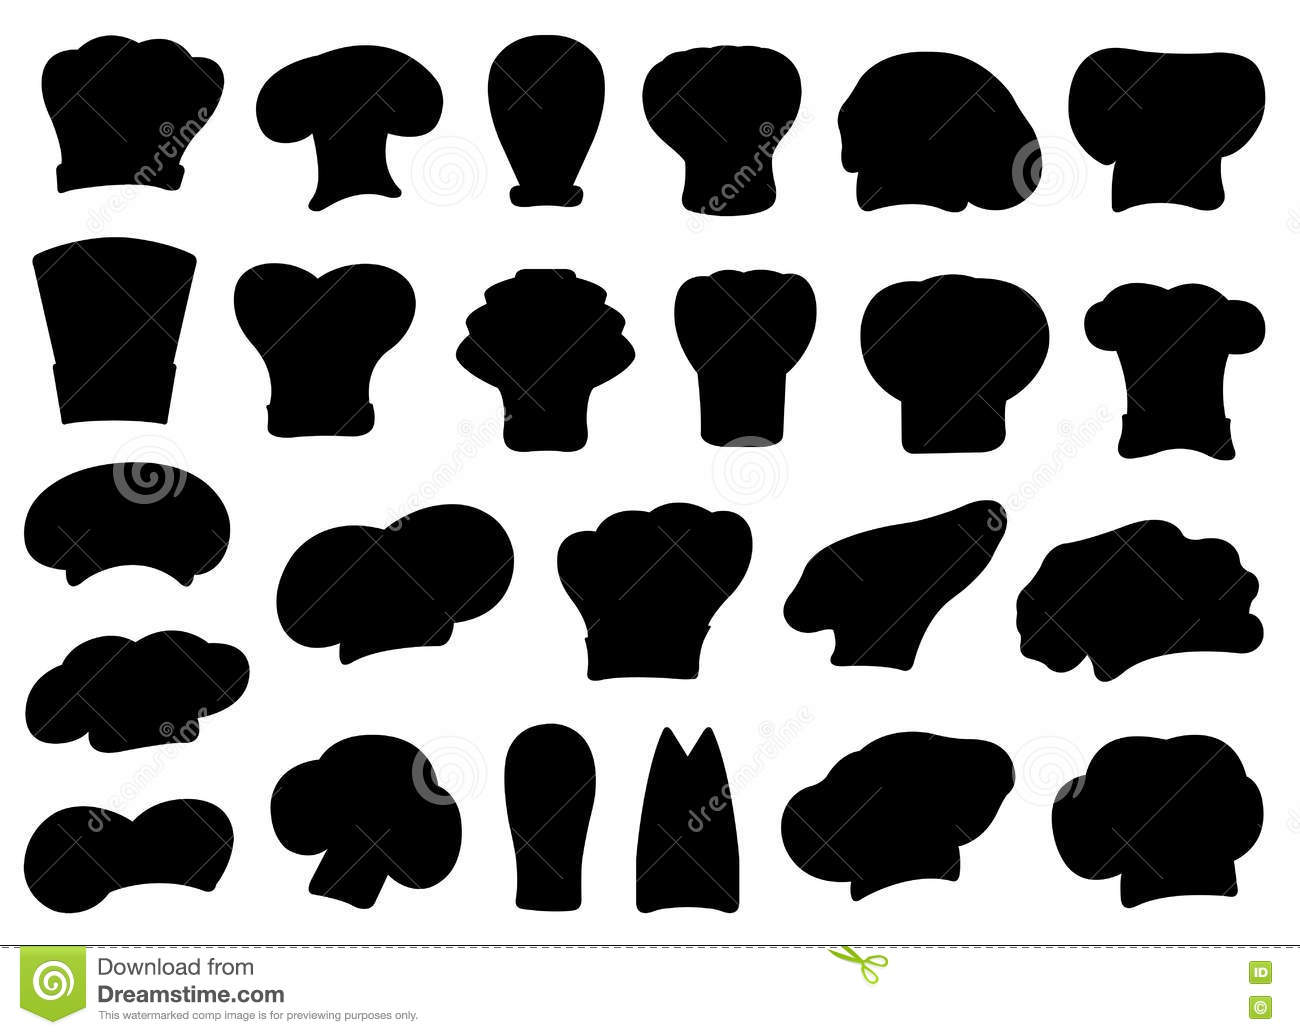 f8ea79ad Illustration Of Different Chef Hats Stock Vector - Illustration of ...